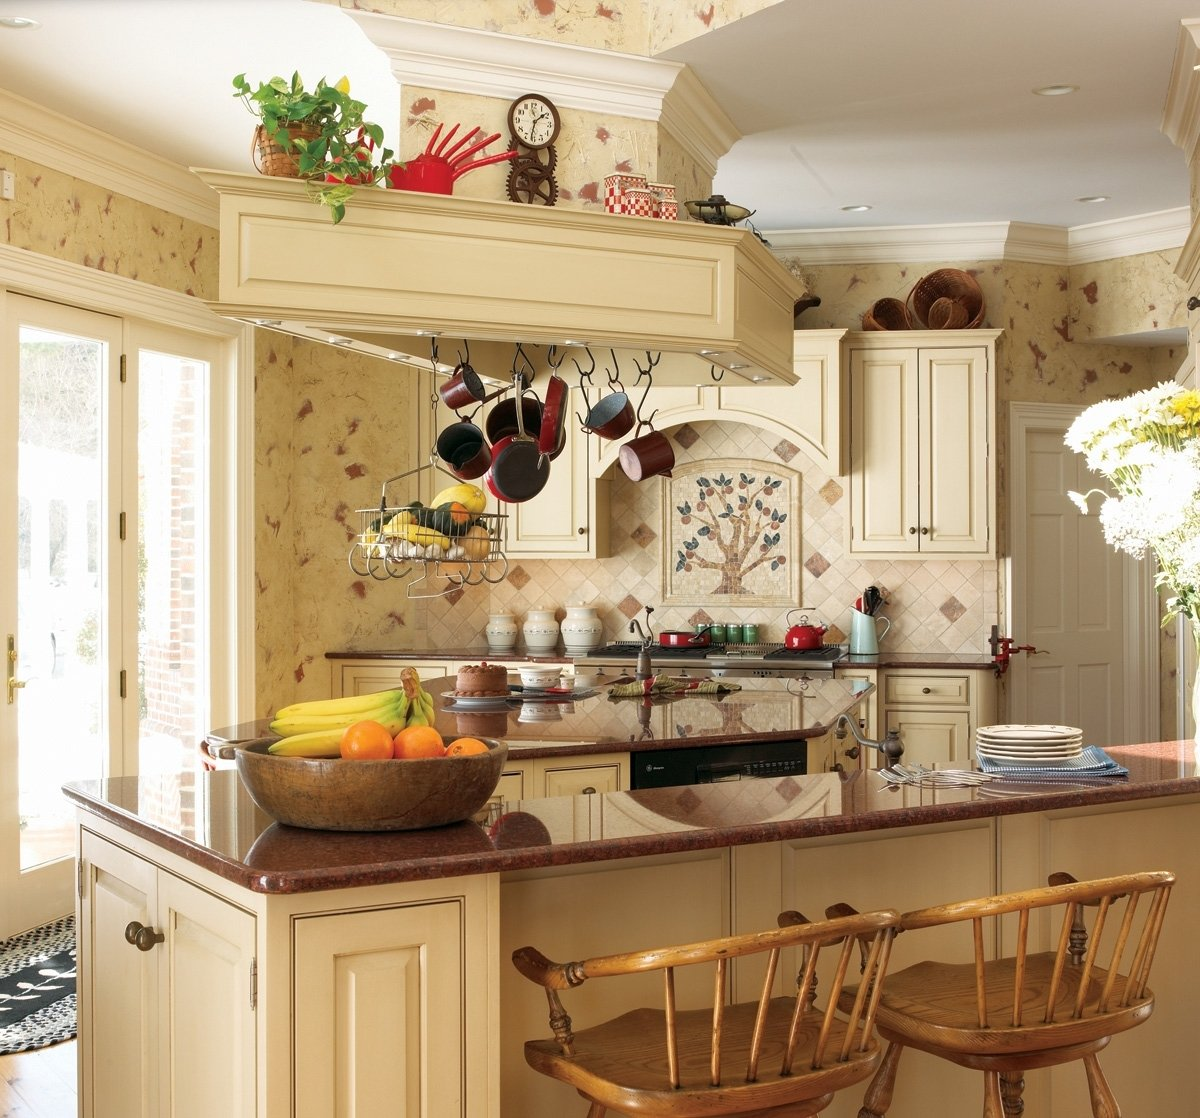 10 Most Popular Country Kitchen Decorating Ideas On A Budget french kitchen decorating ideas with rattan chairs 1323 2020